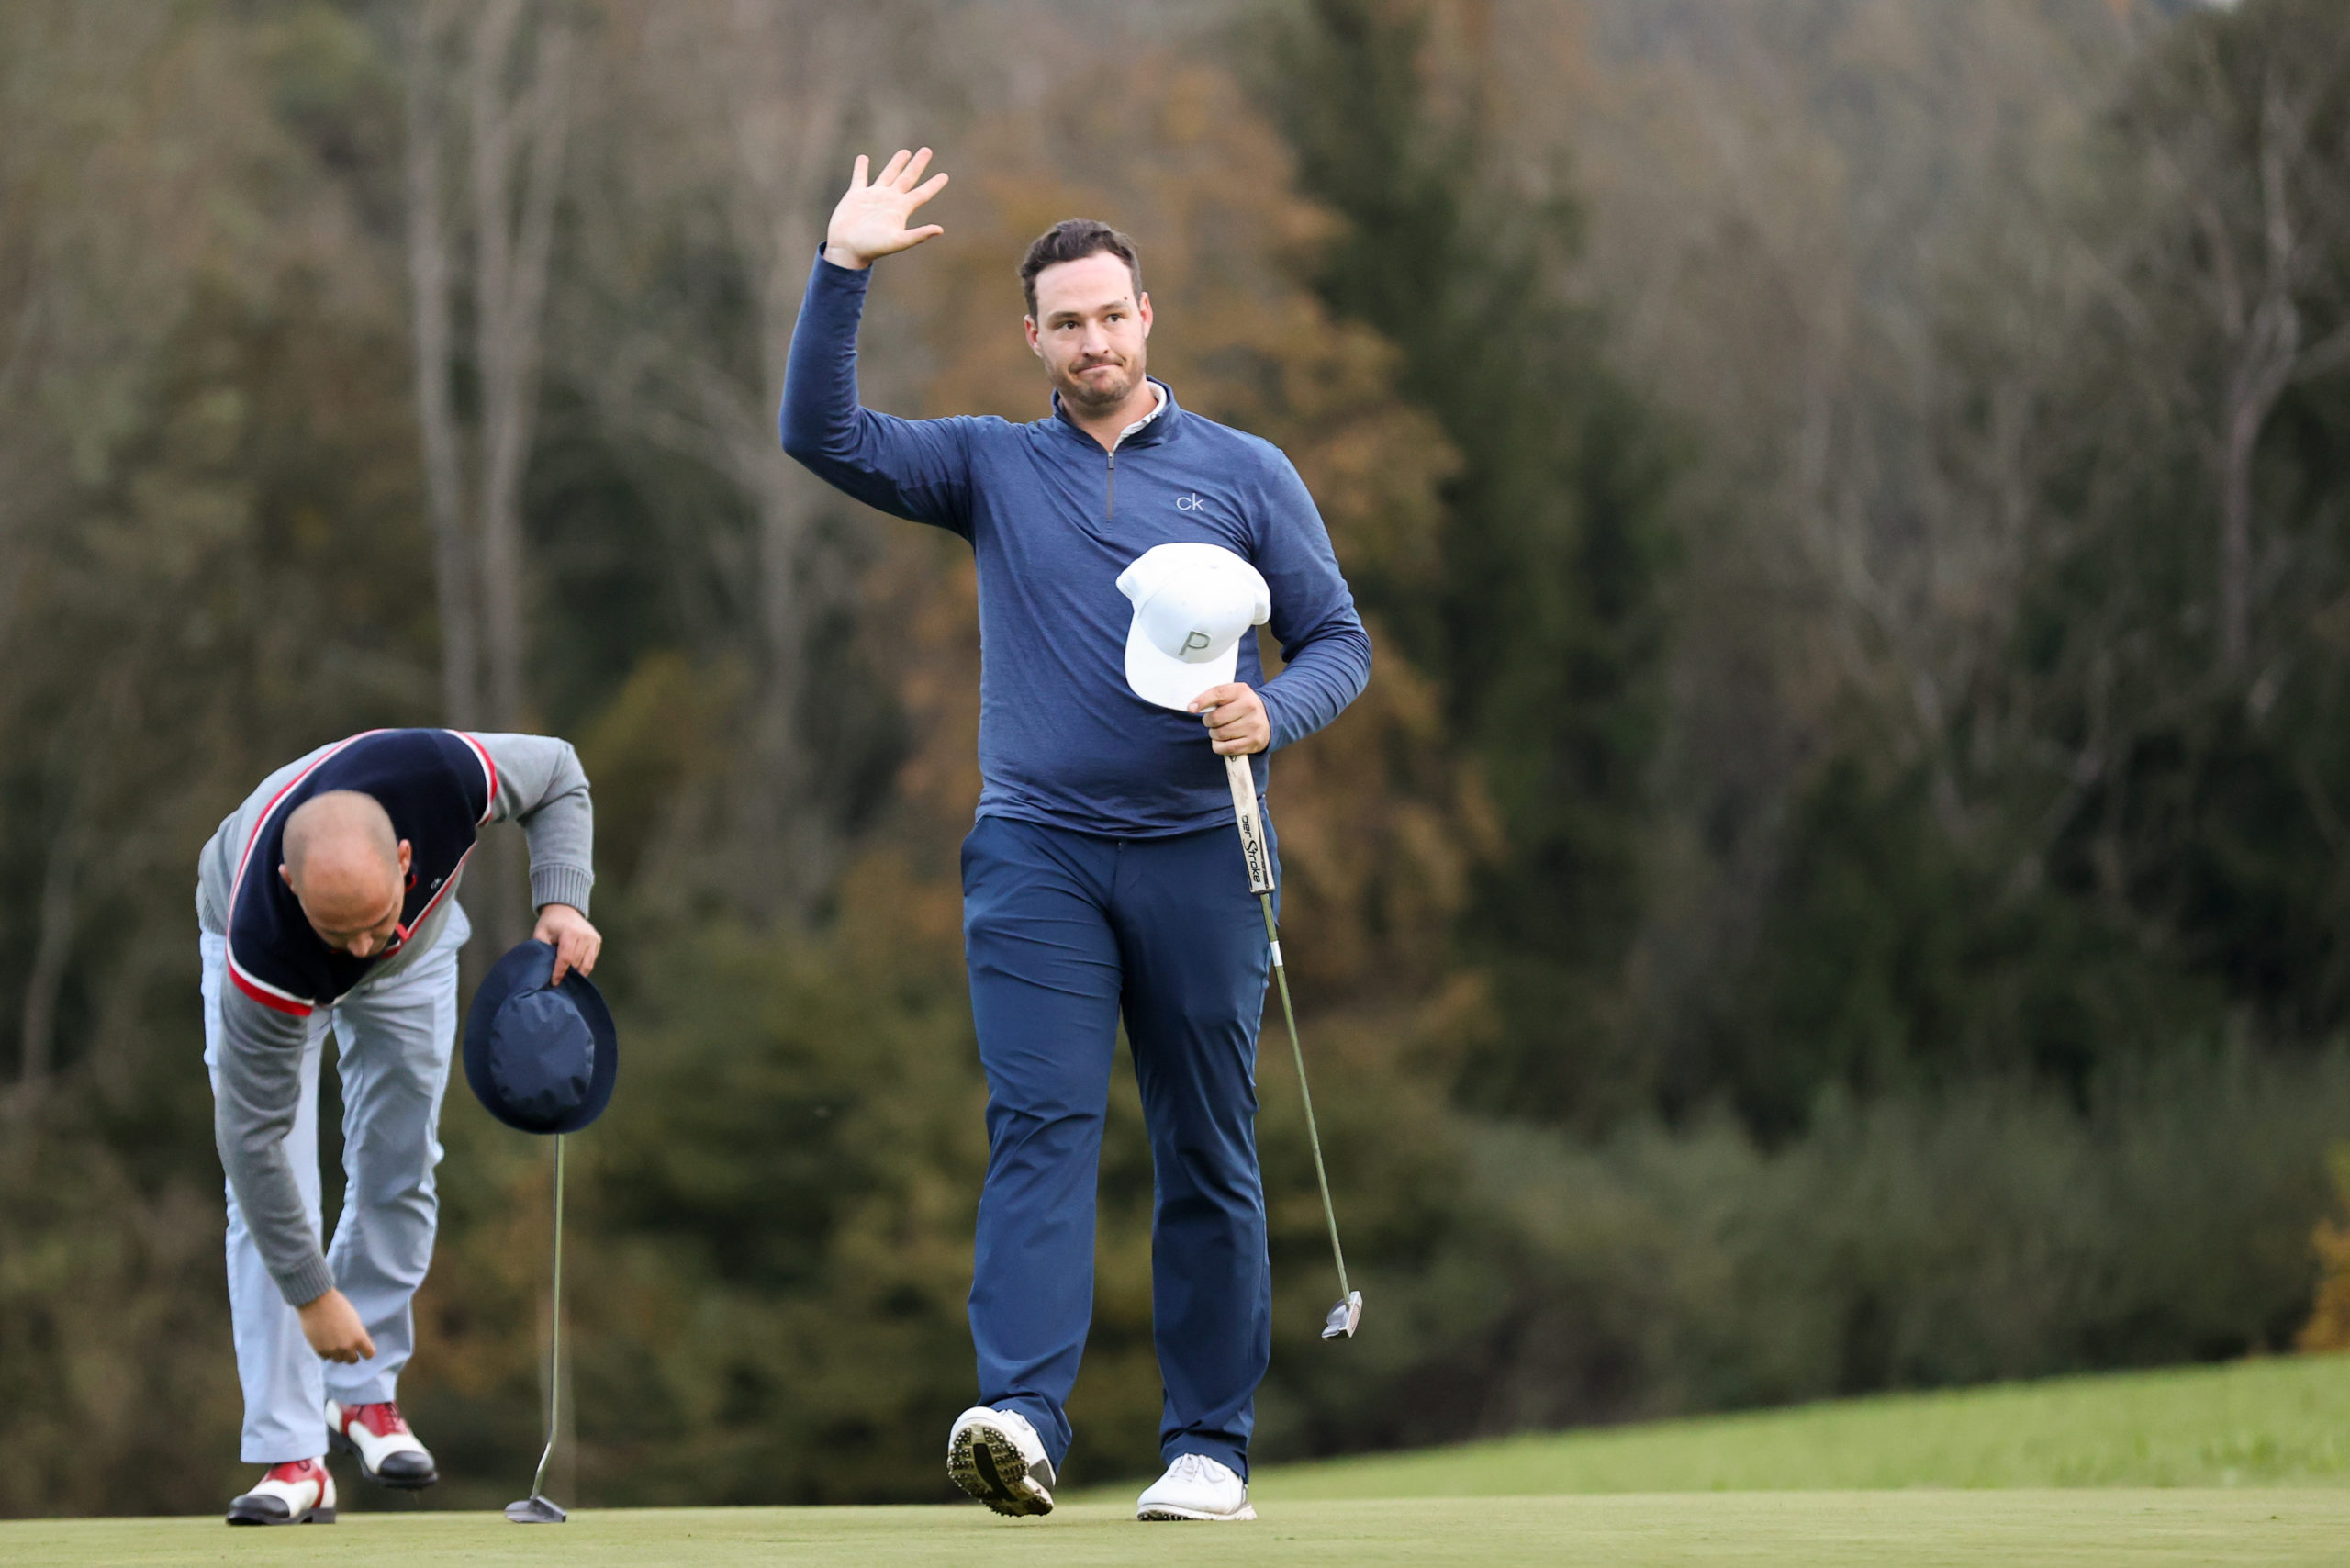 THAL,AUSTRIA,10.OCT.20 - GOLF  - City Championships Graz, GC Thalersee. Image shows the rejoicing of Mario Magagna (GC Gut Freiberg). Photo: GEPA pictures/ Christian Walgram